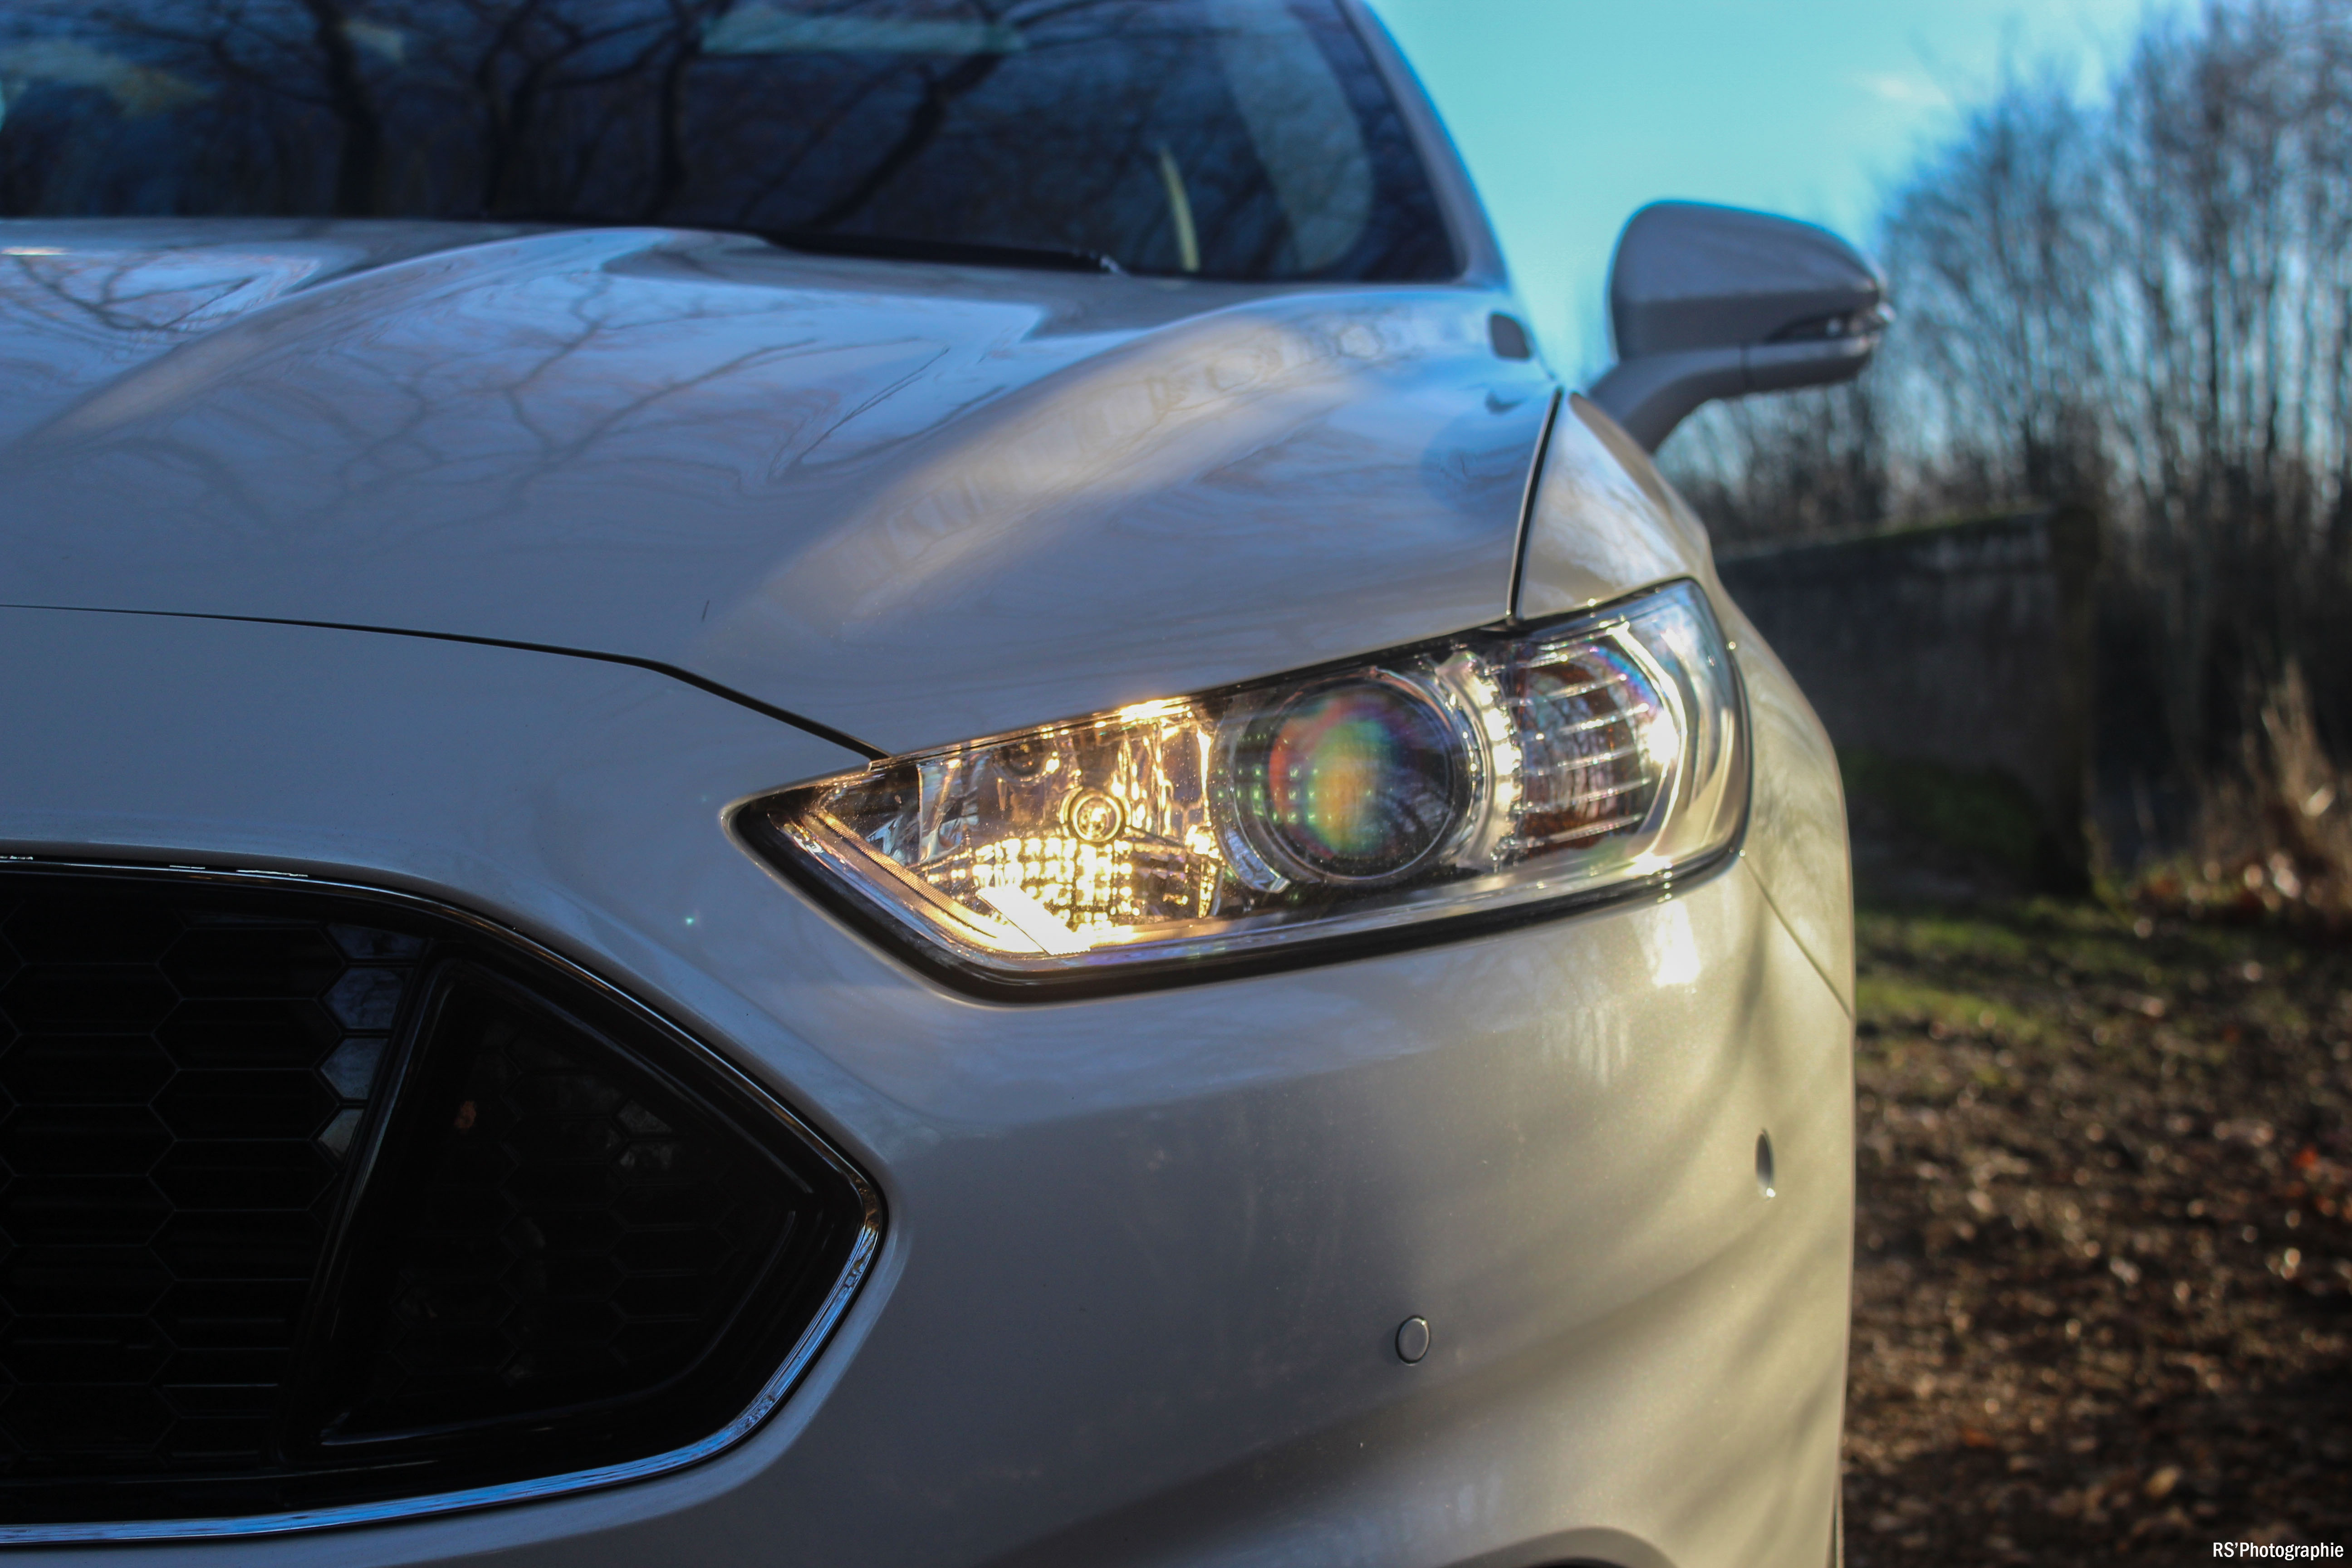 FordMondeoSW9-ford-mondeo-sw-180-headlight-phare-arnaud-demasier-rsphotographie